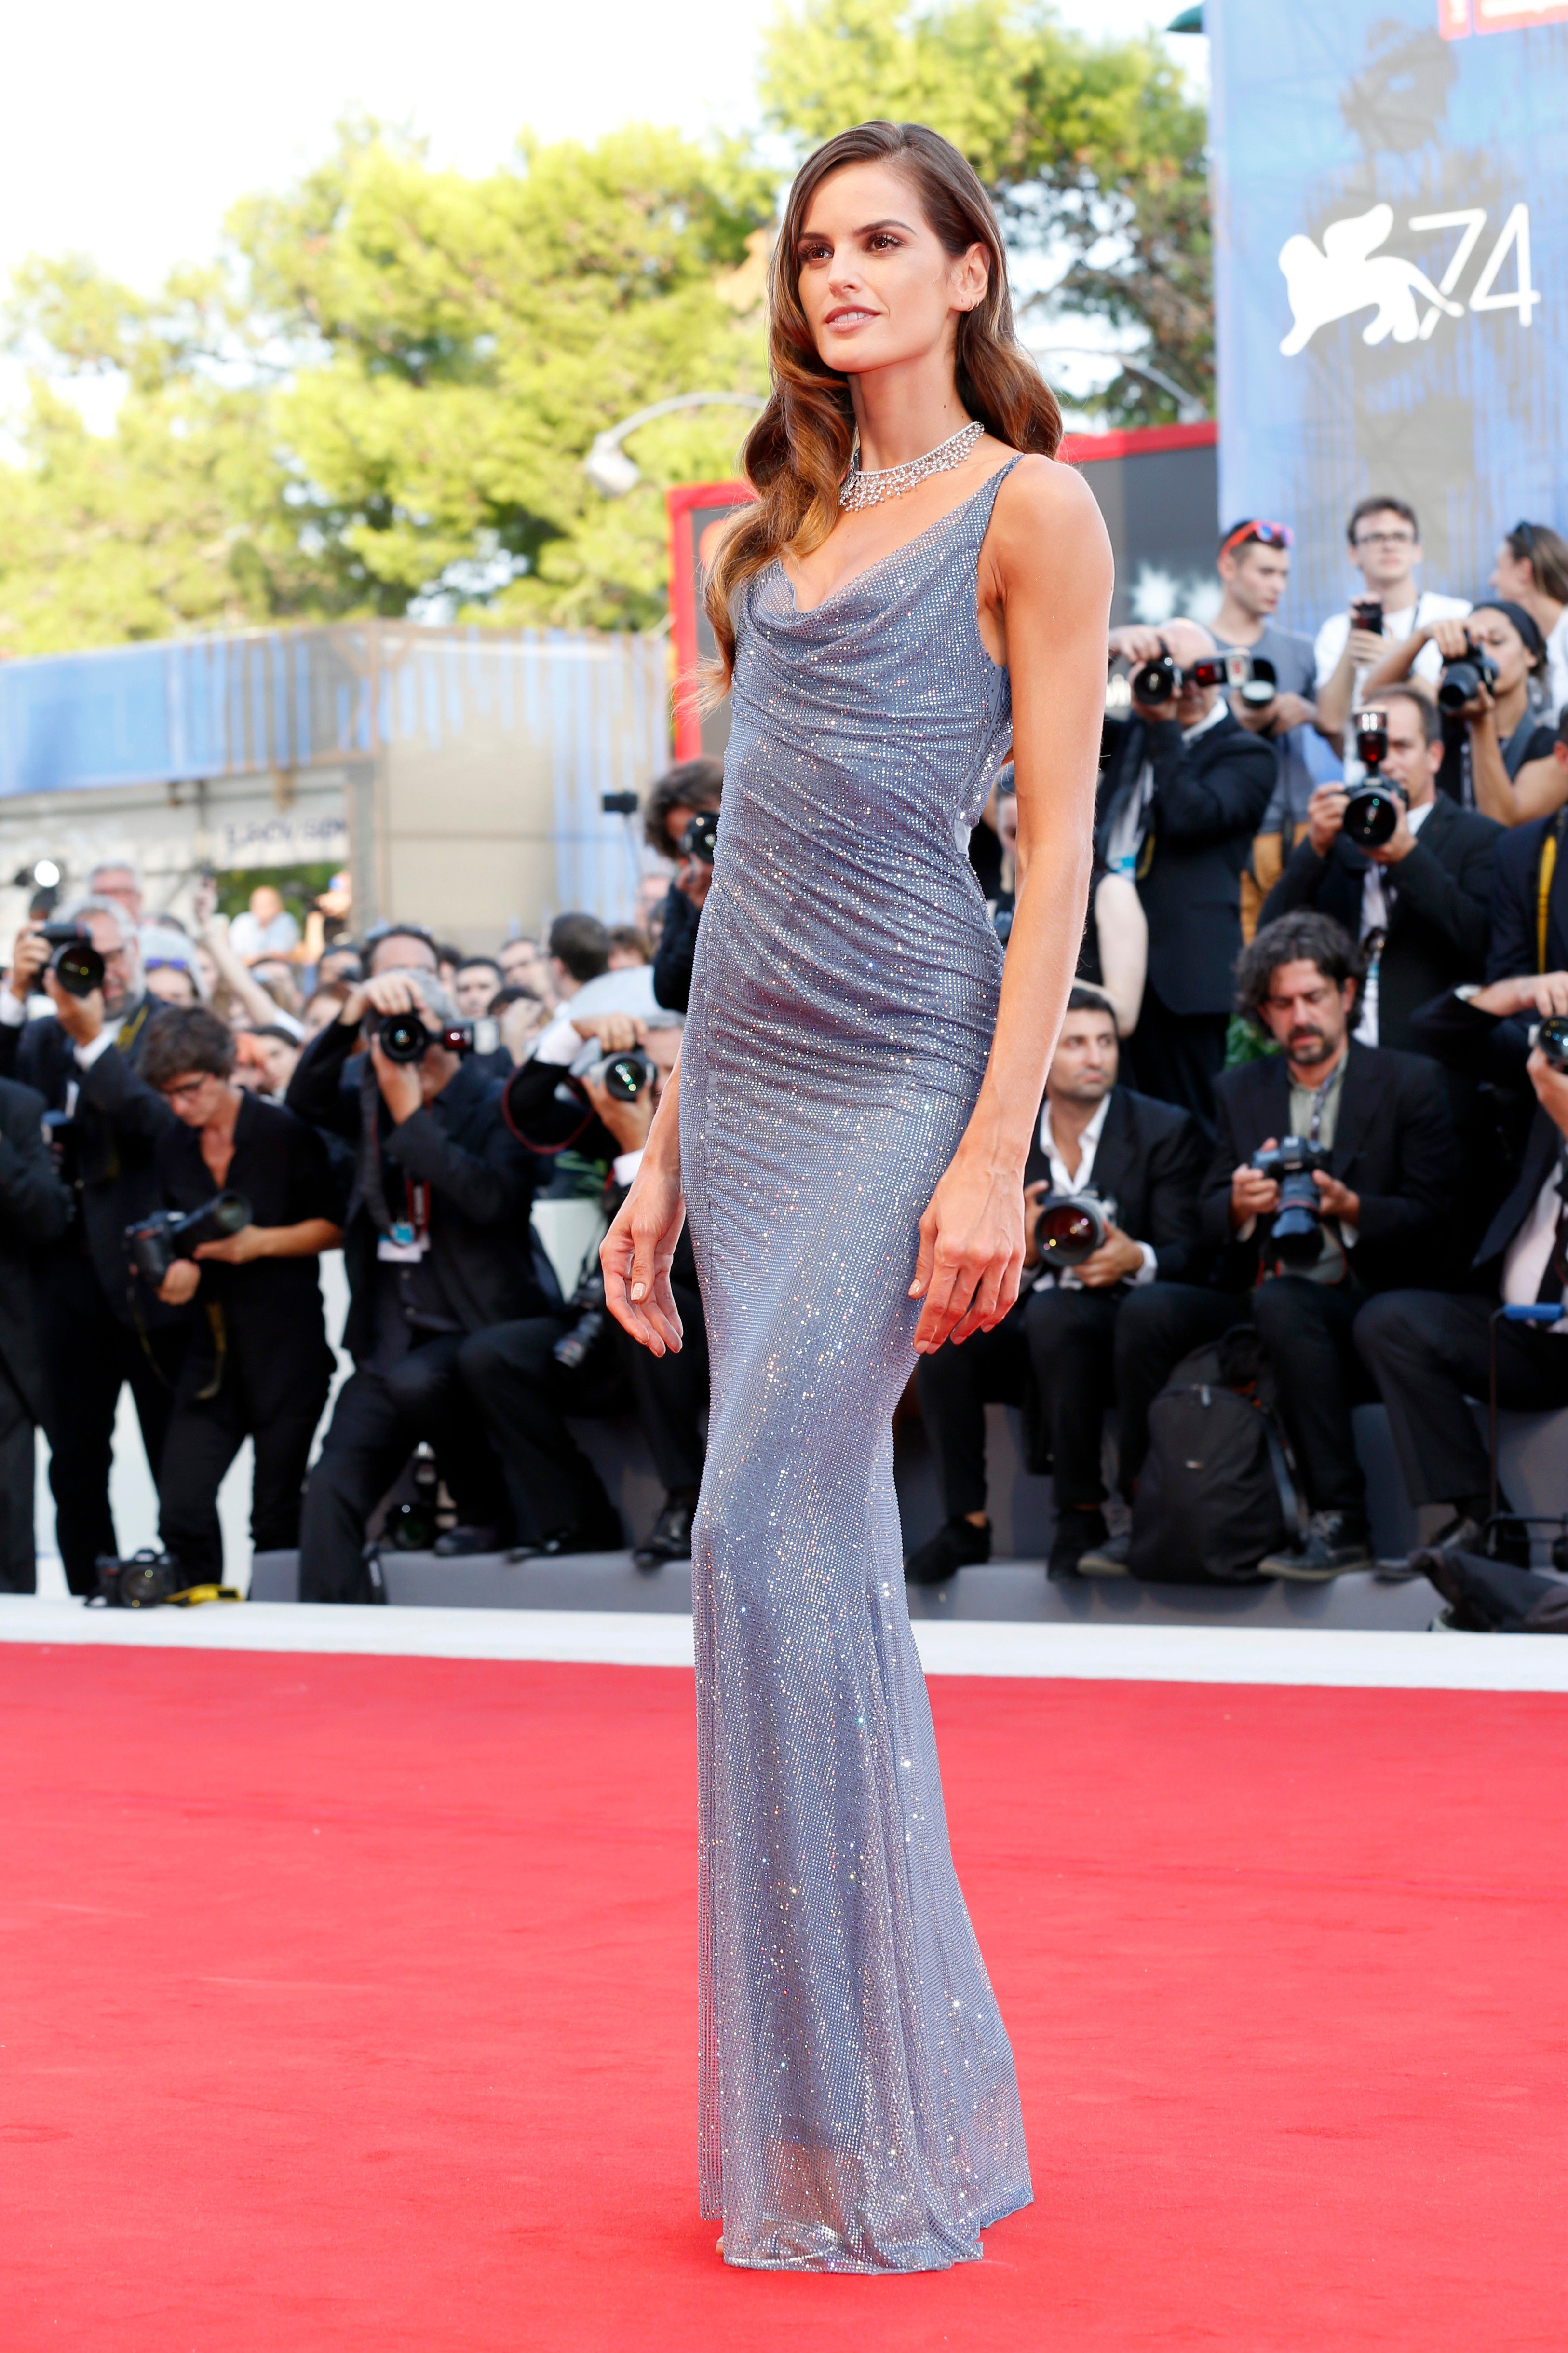 VENICE, ITALY - AUGUST 30: Izabel Goulart arrives at the 'Downsizing' premiere and Opening of the 74th Venice Film Festival at the Palazzo del Cinema on August 30, 2017 in Venice, Italy.  (Photo by John Rasimus)   ***FRANCE, SWEDEN, NORWAY, DENARK, FINLAND, USA, CZECH REPUBLIC, SOUTH AMERICA ONLY***/insight media, Image: 347758420, License: Rights-managed, Restrictions: , Model Release: no, Credit line: Profimedia, Insight Media